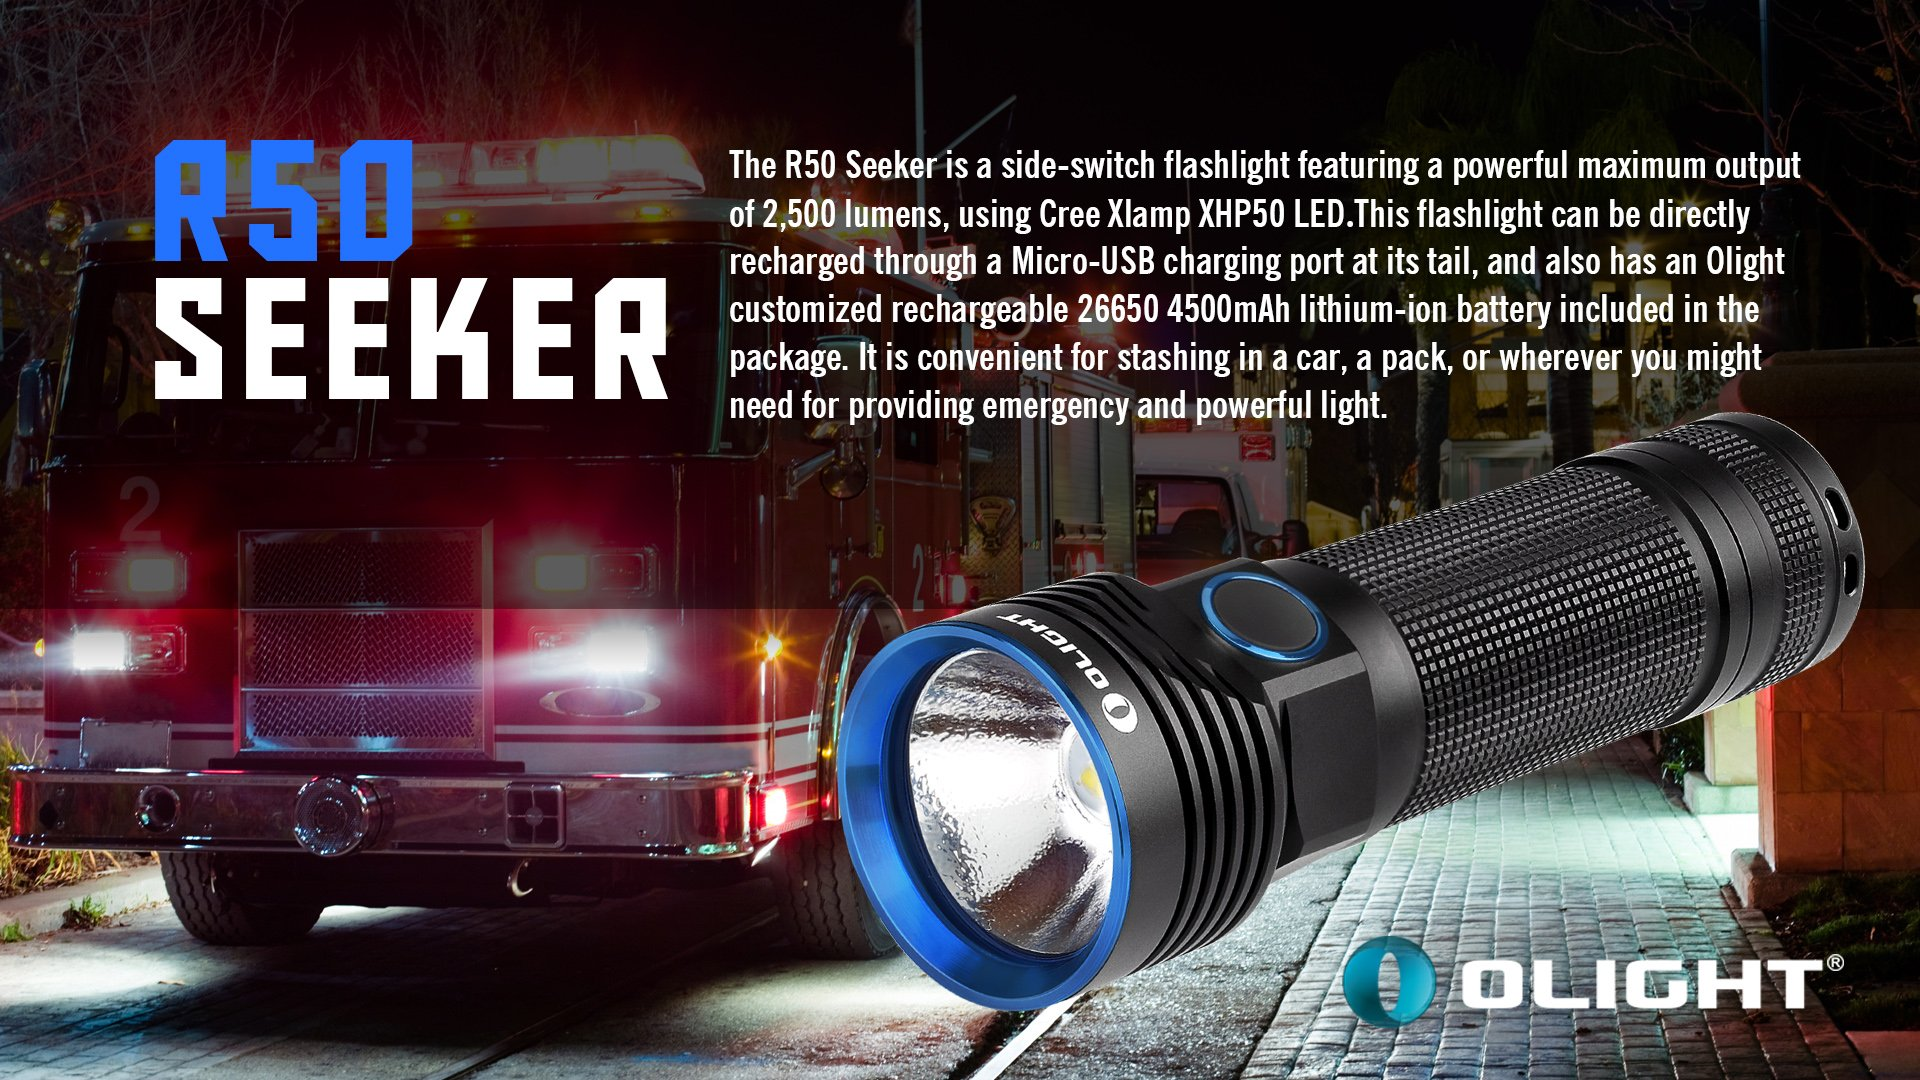 Bundle: Olight R50 Seeker Cree XLamp XHP50 LED 2500 Lumens Rechargeable Flashlight With Rechargeable 26650 4500mAh Battery+Skyben Holster and USB Light by Olight (Image #4)